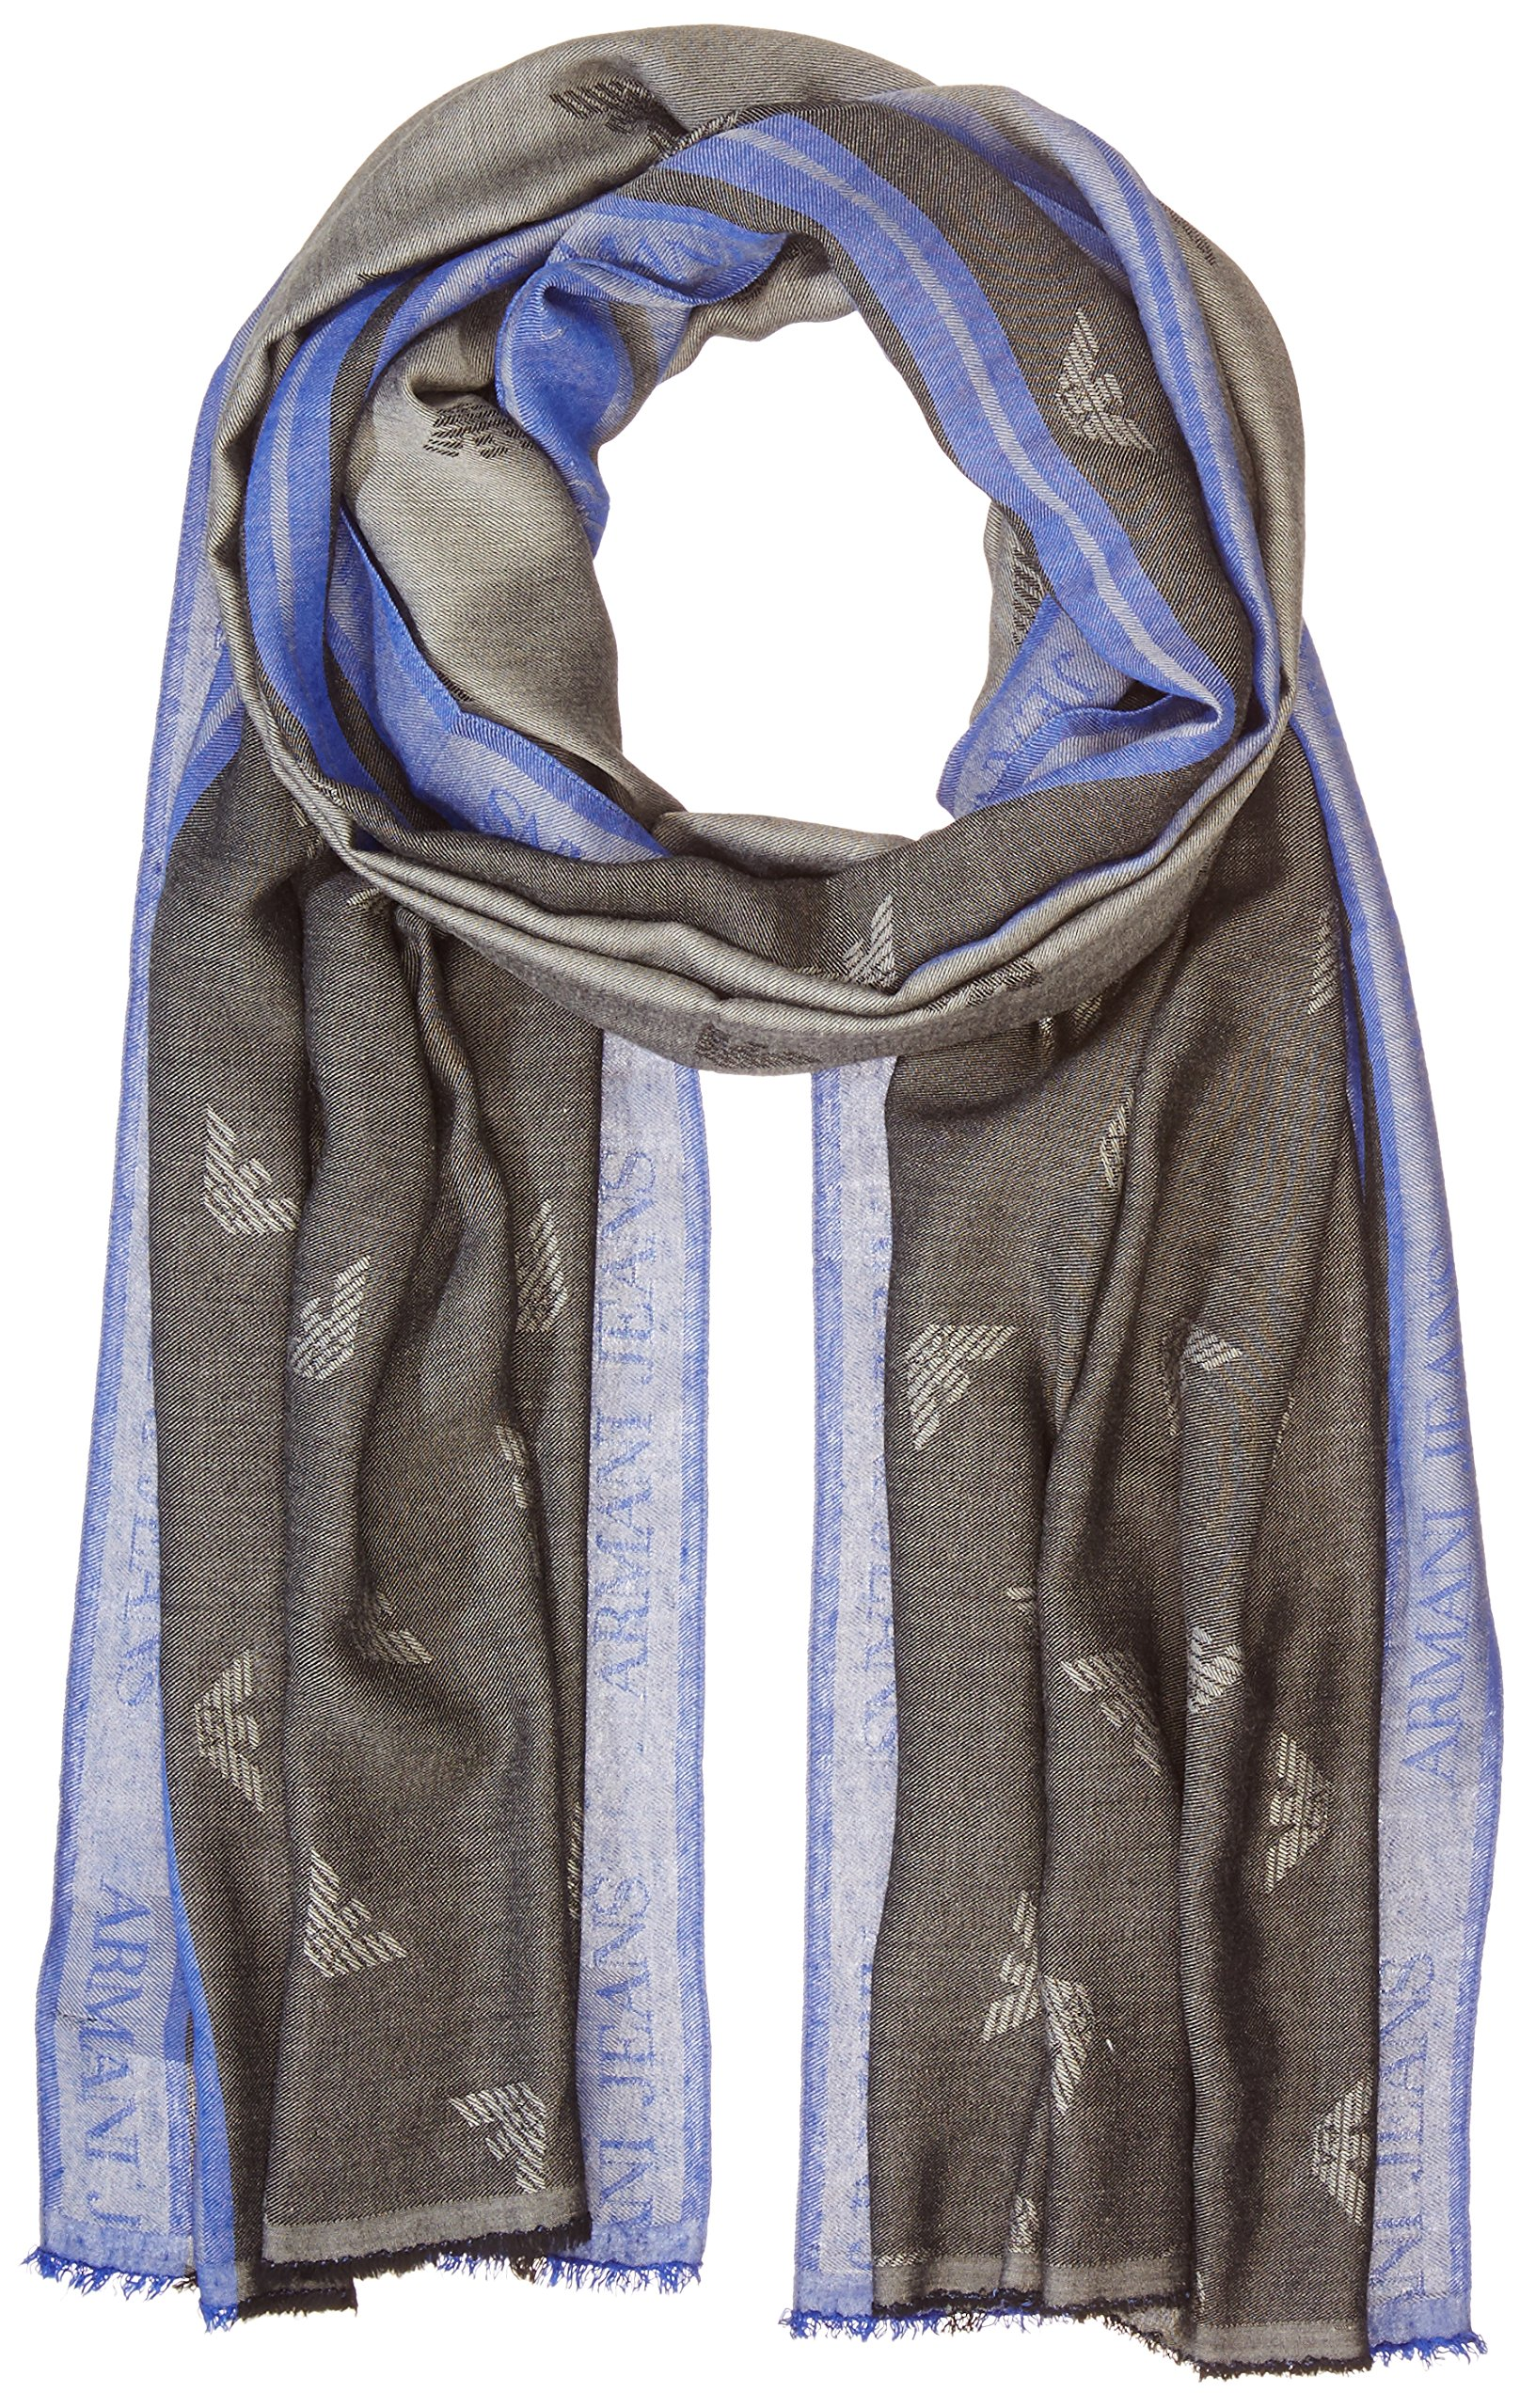 Armani Jeans Men's Viscose Fabric Scarf With Eagle Logo, blue/black, ONE SIZE